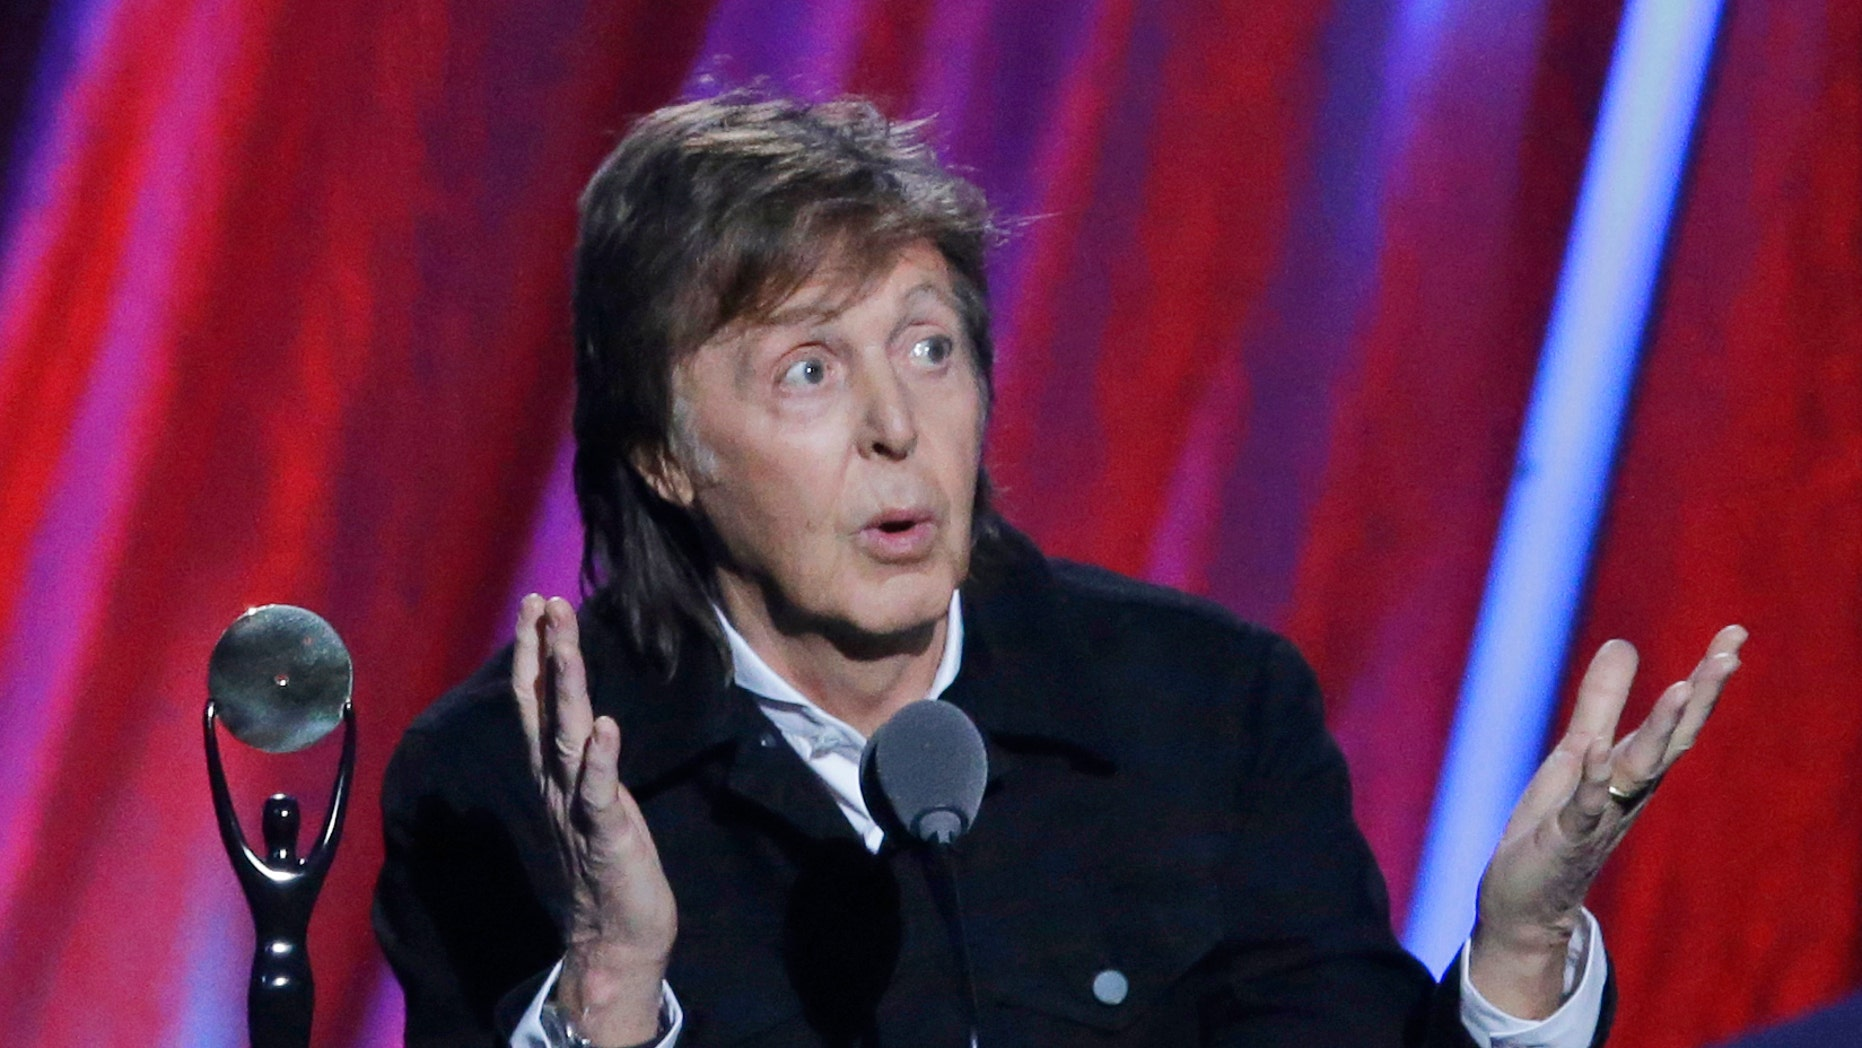 April 19, 2015. Paul McCartney introduces Ringo Starr at the Rock and Roll Hall of Fame induction ceremonies,  in Cleveland, Ohio.